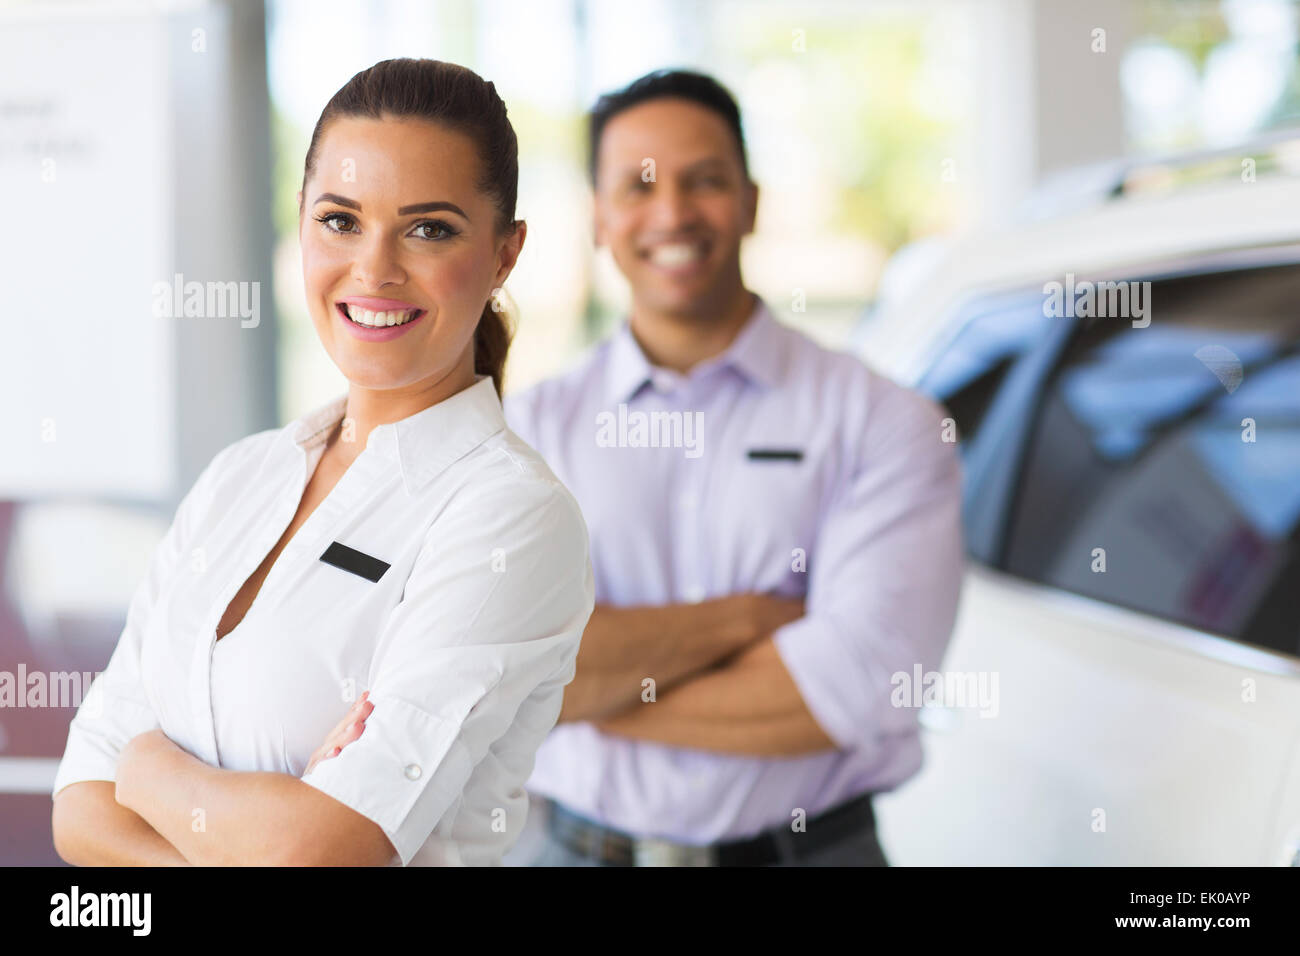 pretty young saleswoman with co-worker on background - Stock Image